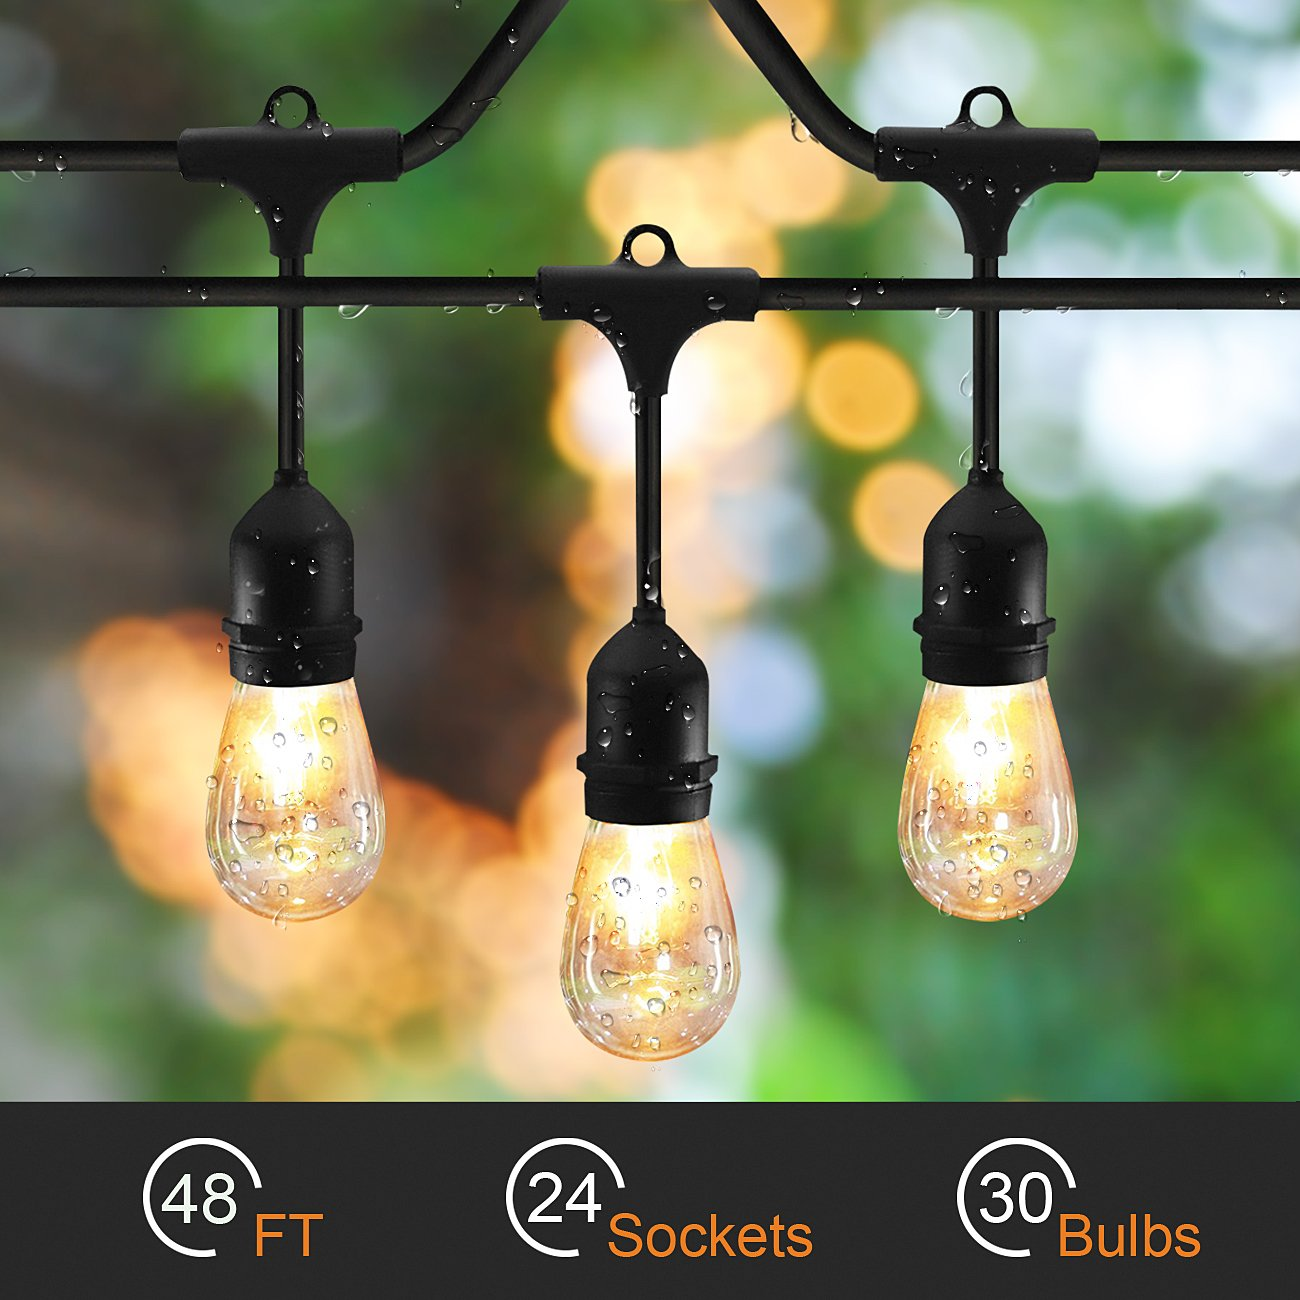 SLZ SUNTHIN 48ft String Lights with 24 x E26 Dropped Sockets and Hanging Loops - 30 x 11 Watt S14 Bulbs Included (6 Spares), Indoor/Outdoor Light Strings, String of lights.